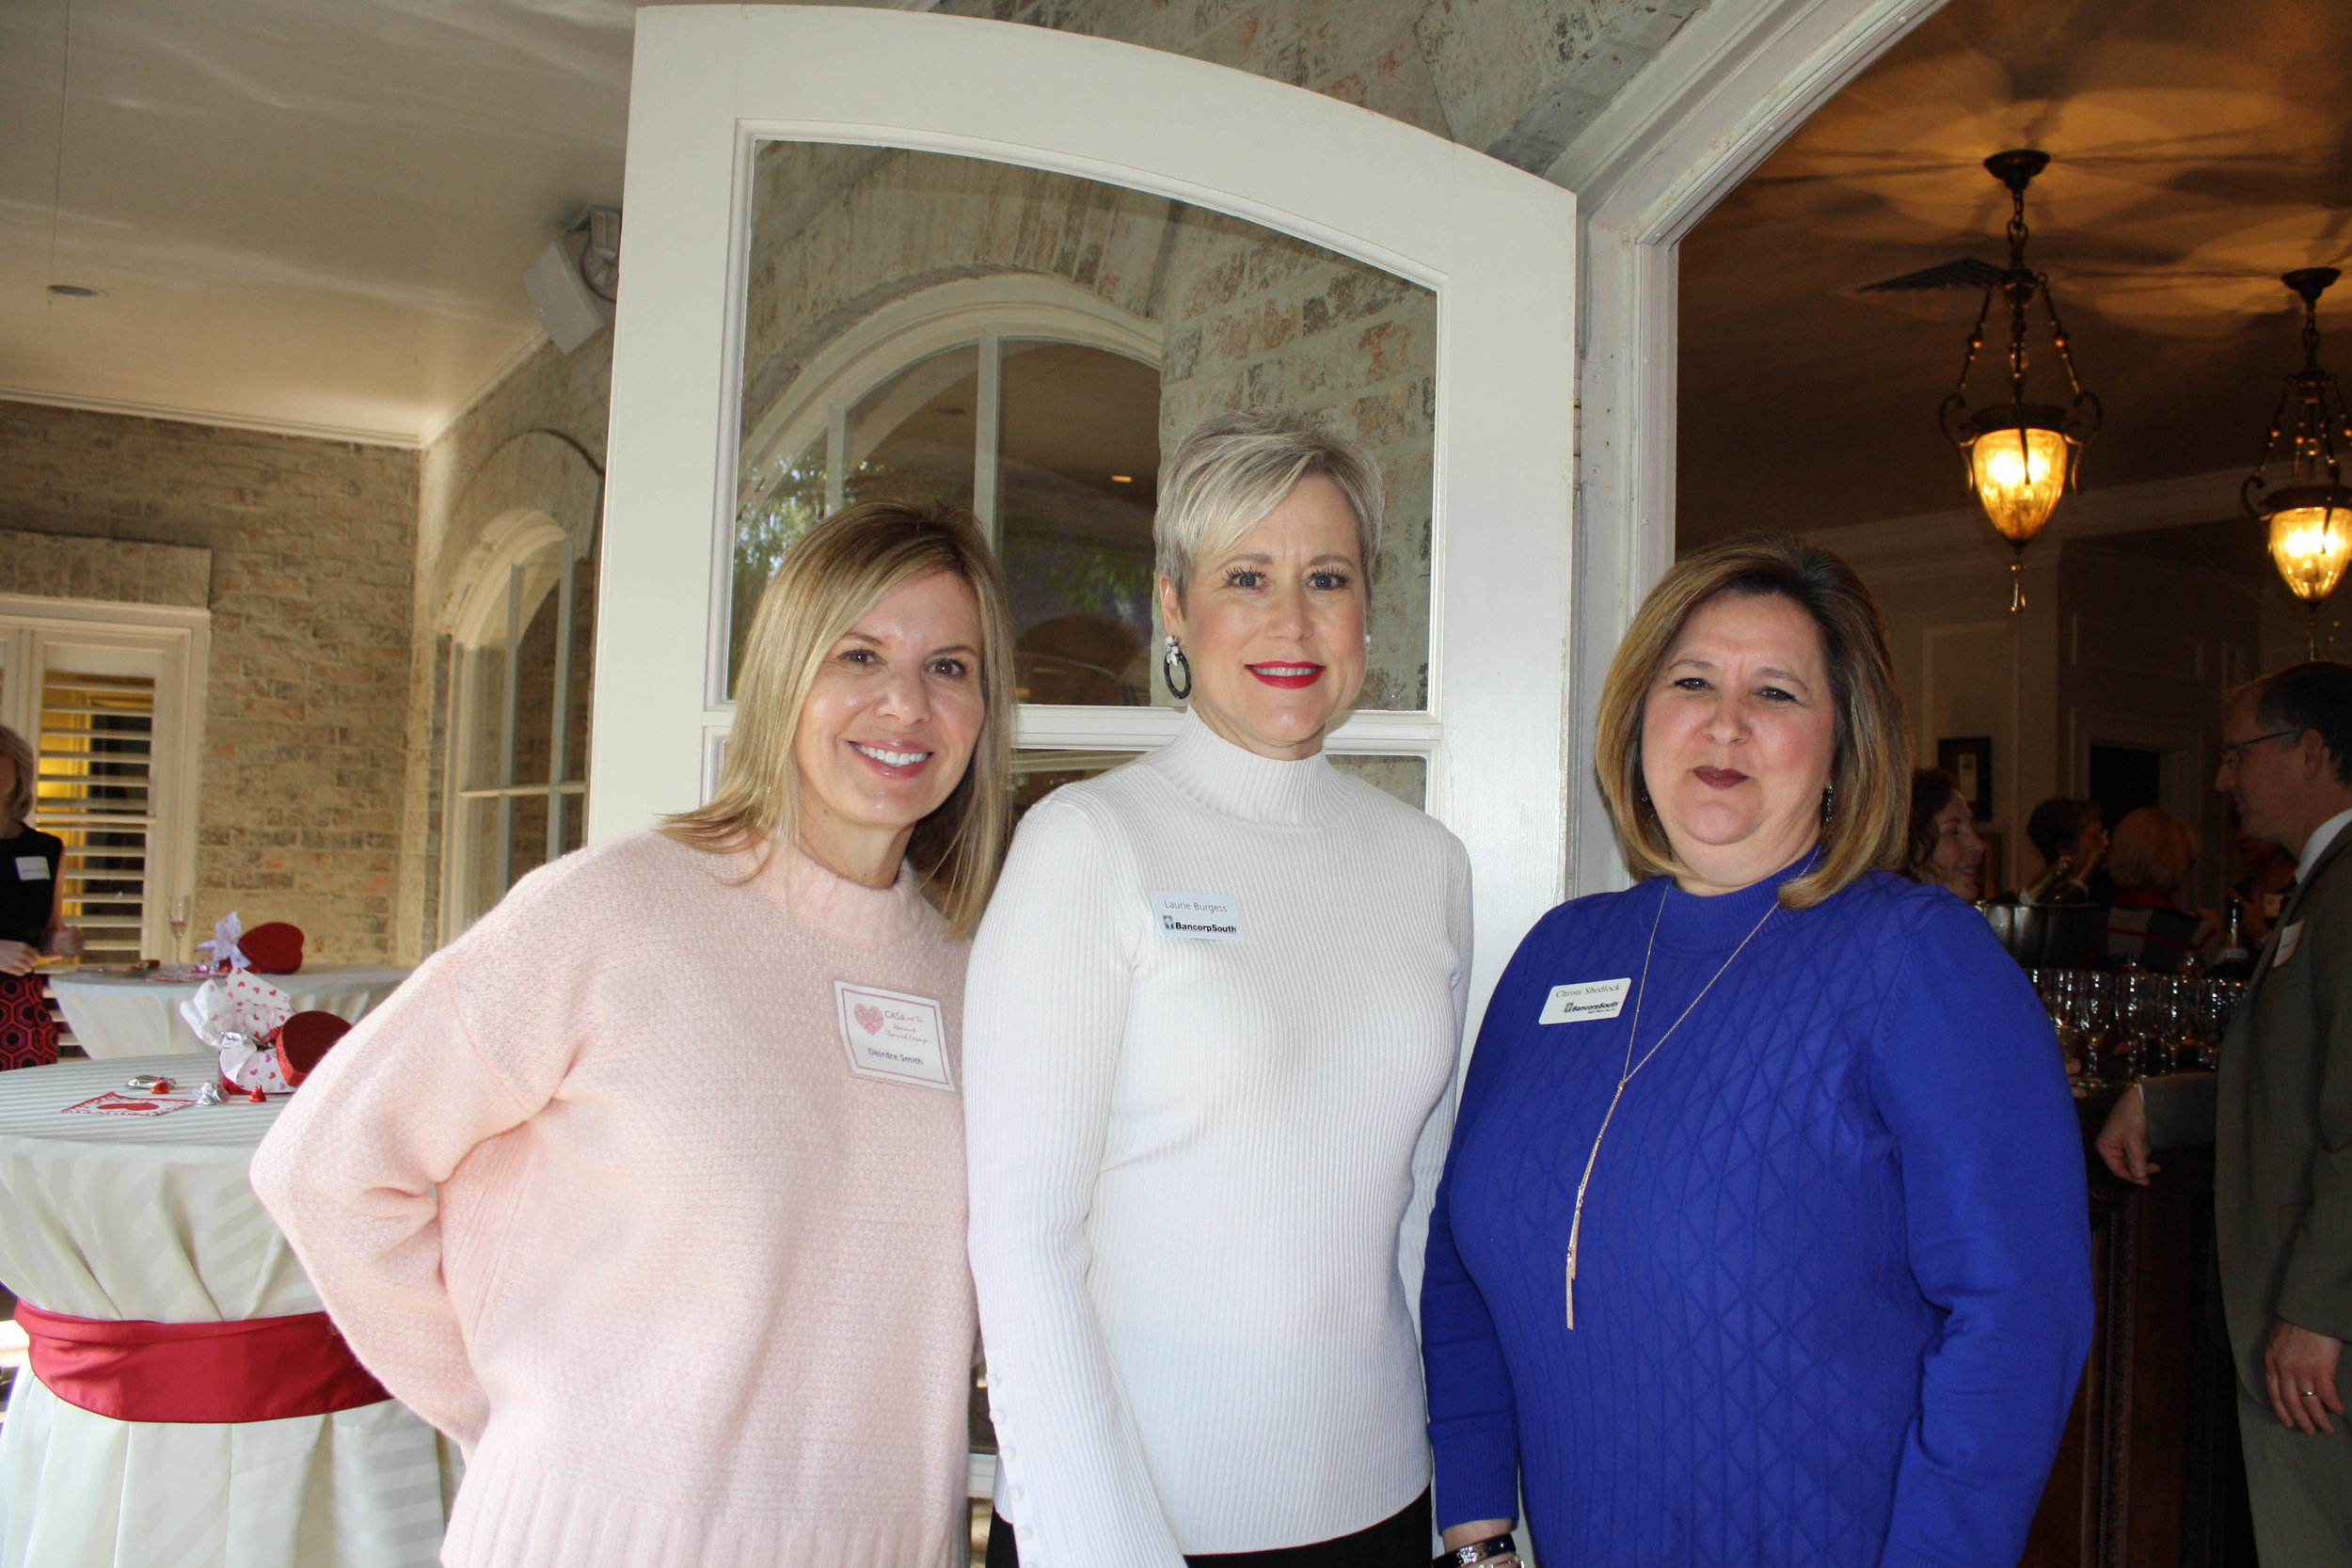 Deirdre Smith, Laurie Burgess and Christi Shedlock